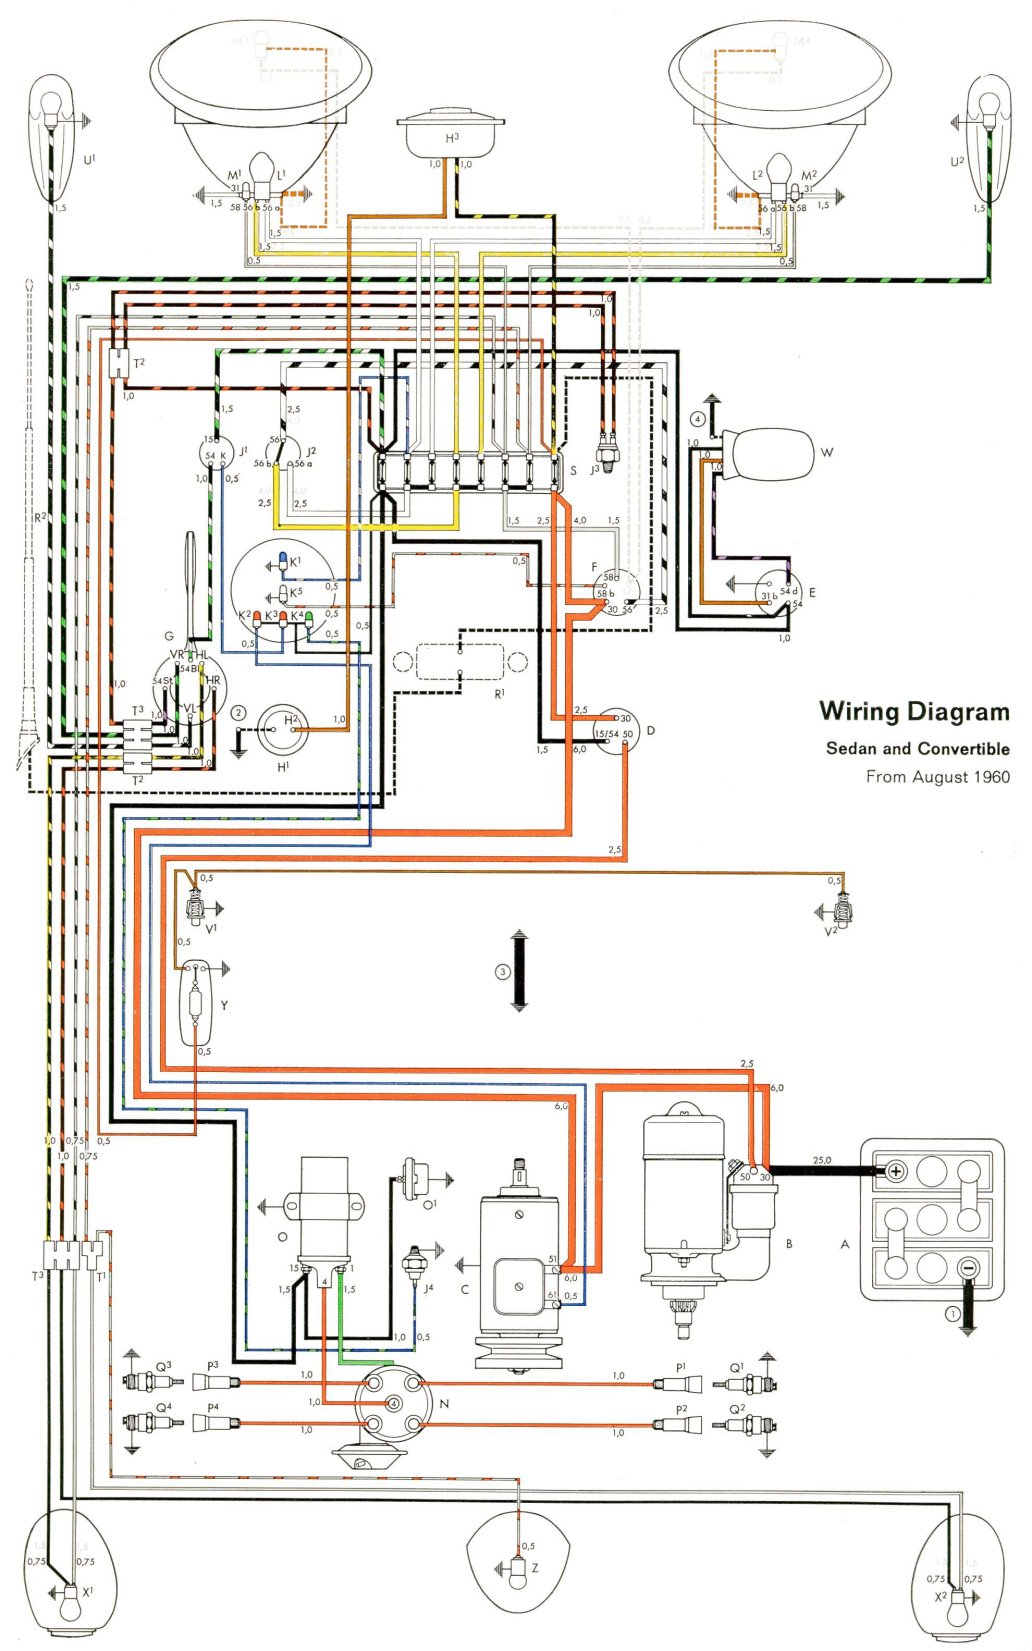 bug_61 1961 beetle wiring diagram thegoldenbug com 1973 vw wiring diagram at pacquiaovsvargaslive.co